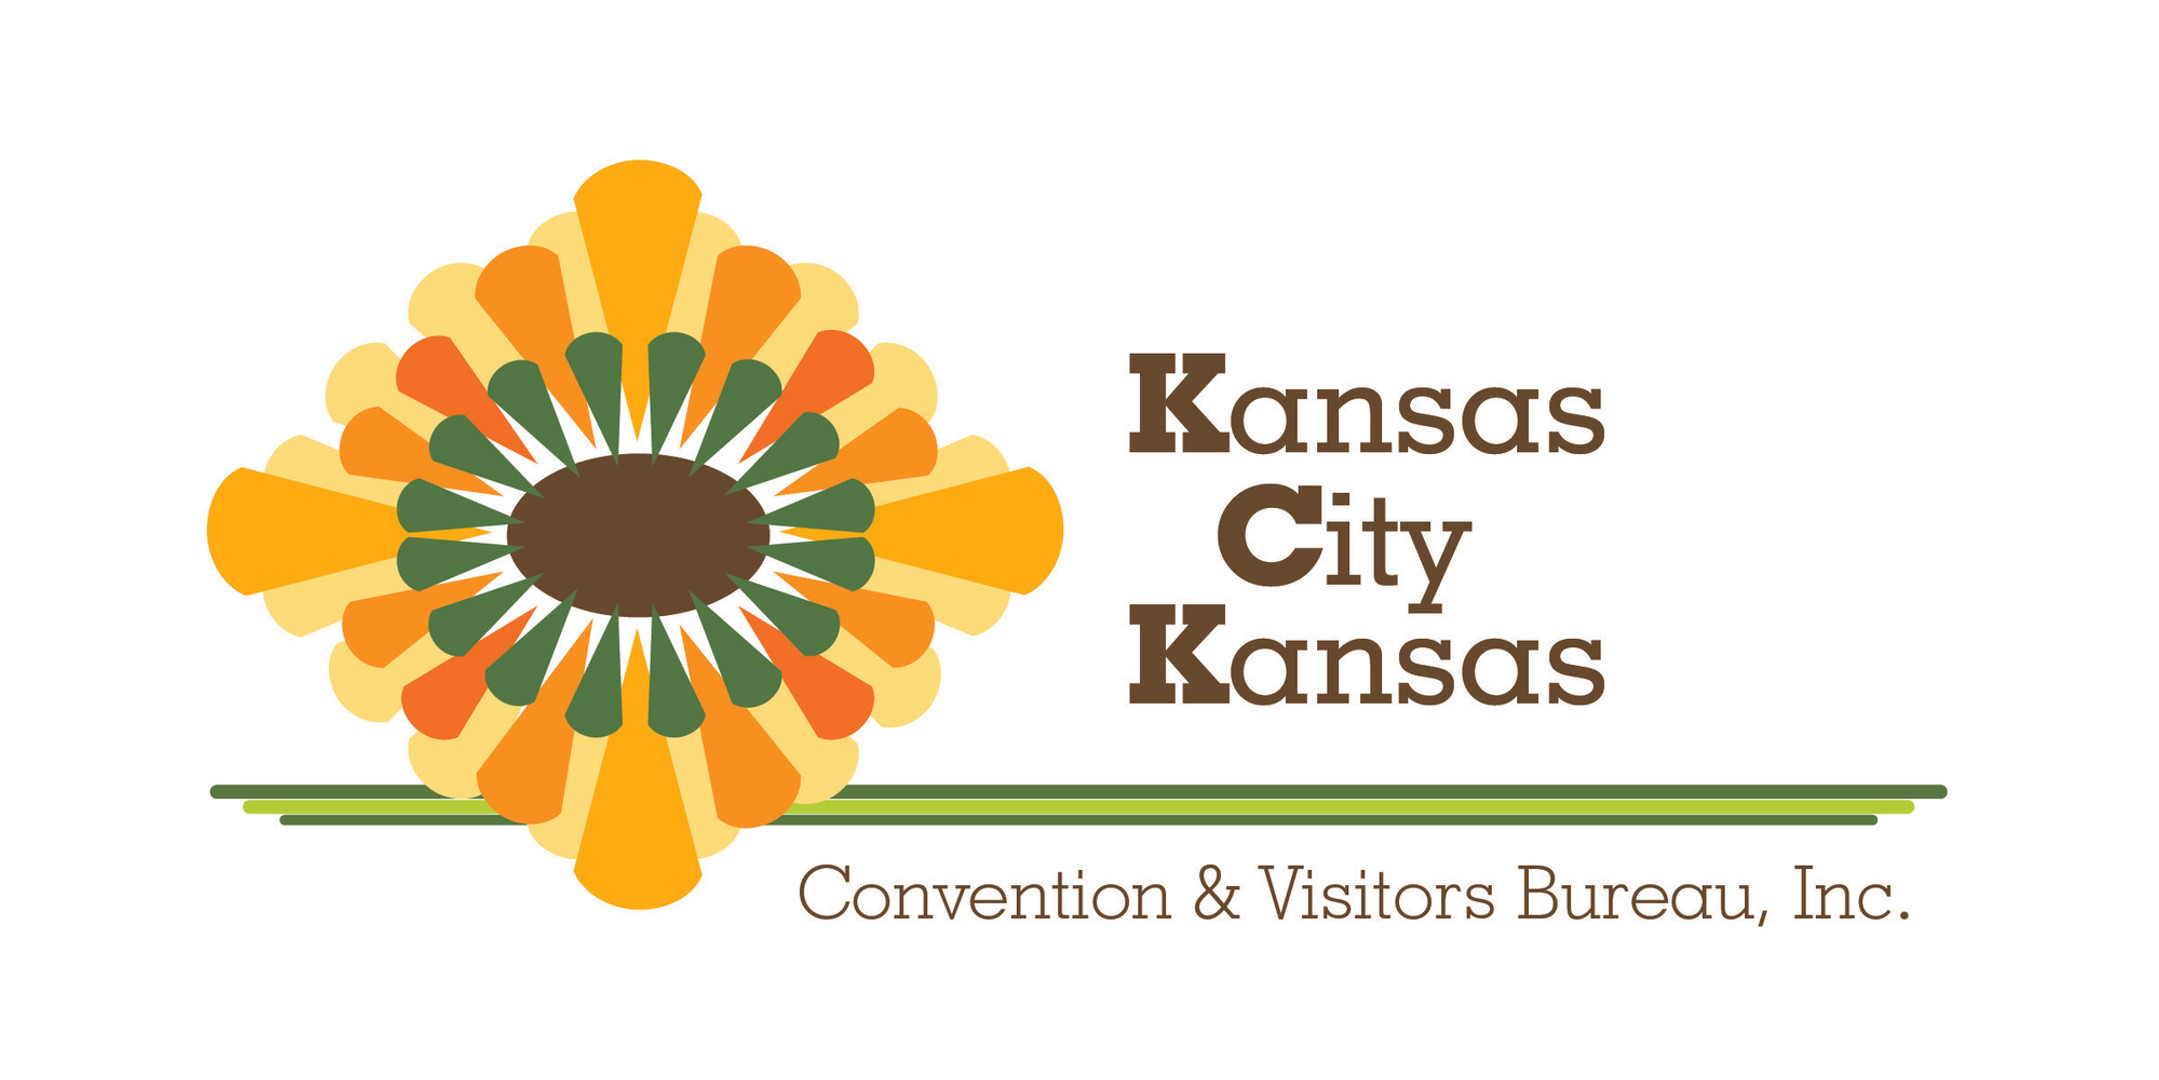 KCK Conventions and Visitors Bureau.jpg